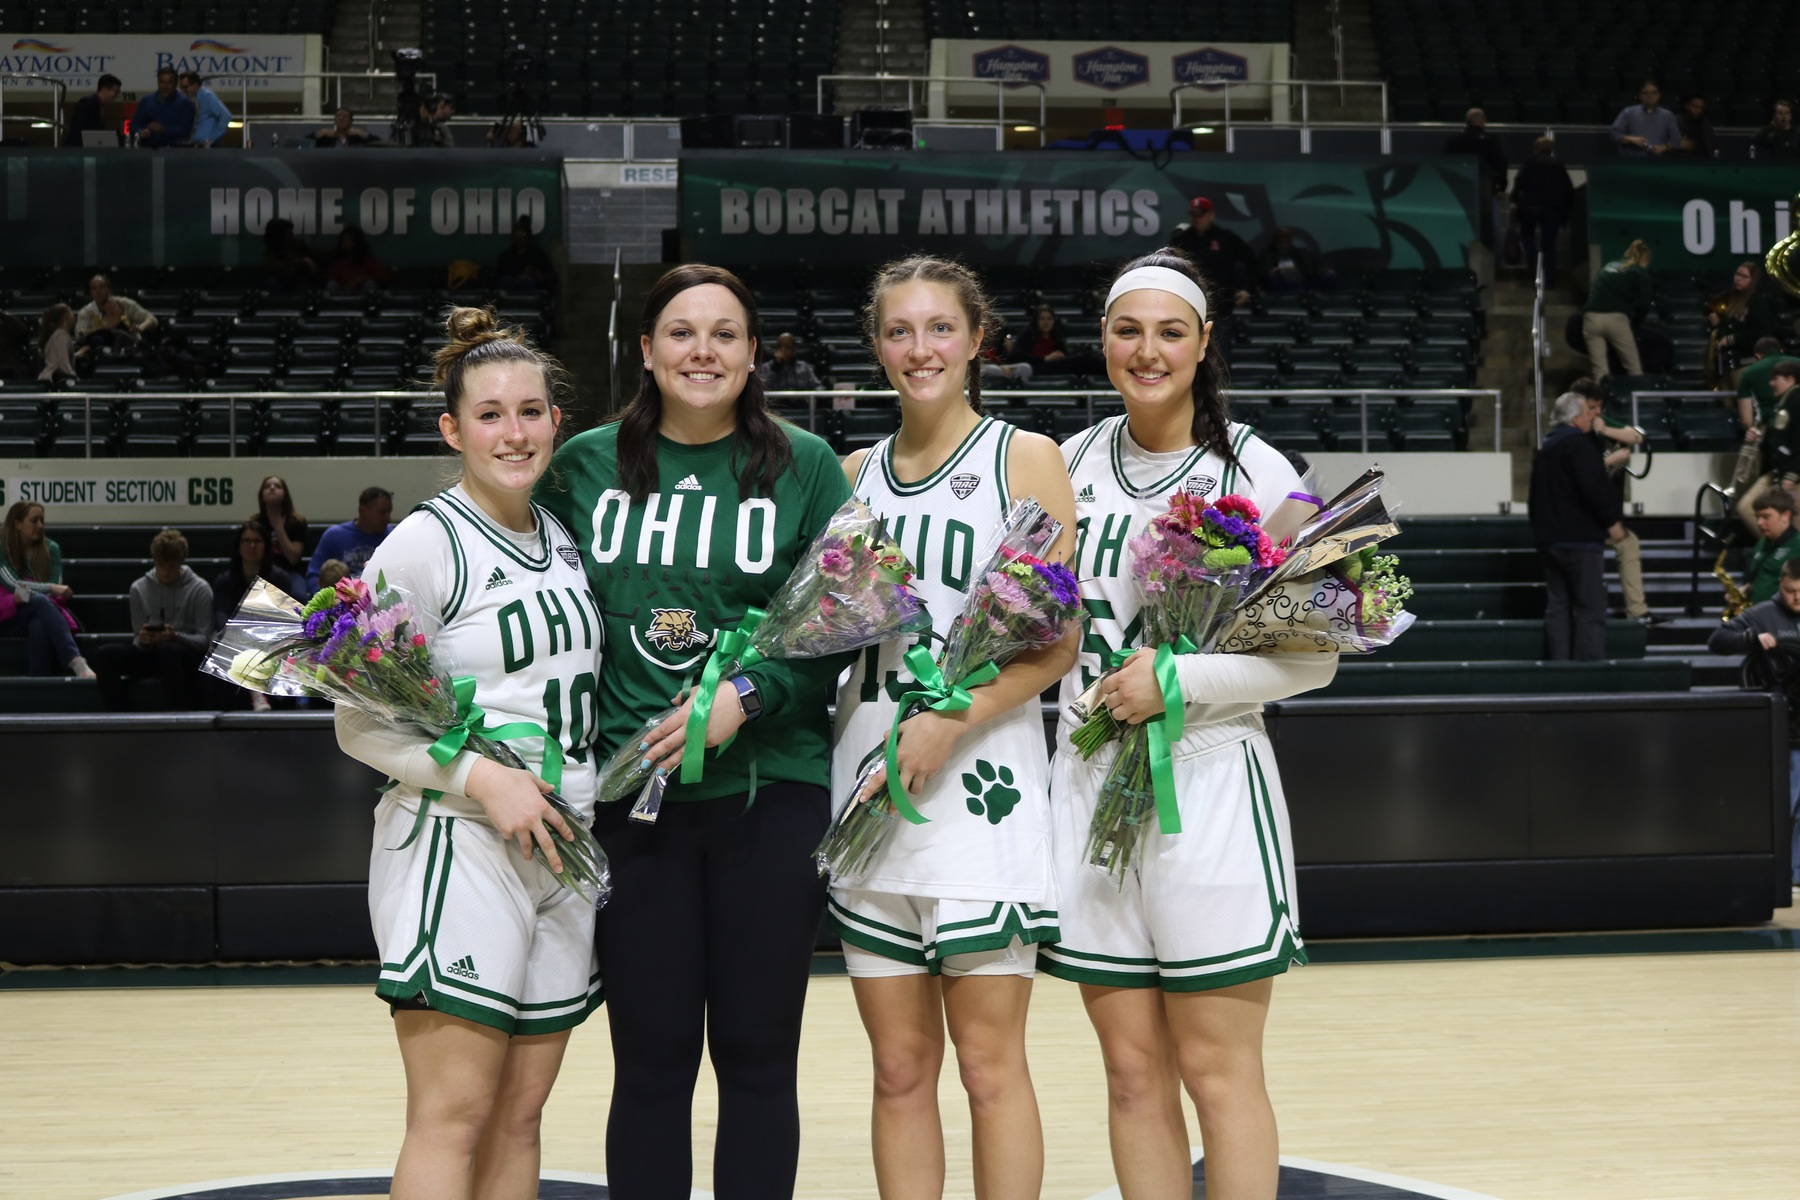 Ohio Women's Basketball Earns Senior Day Win Over Bowling Green, 76-68